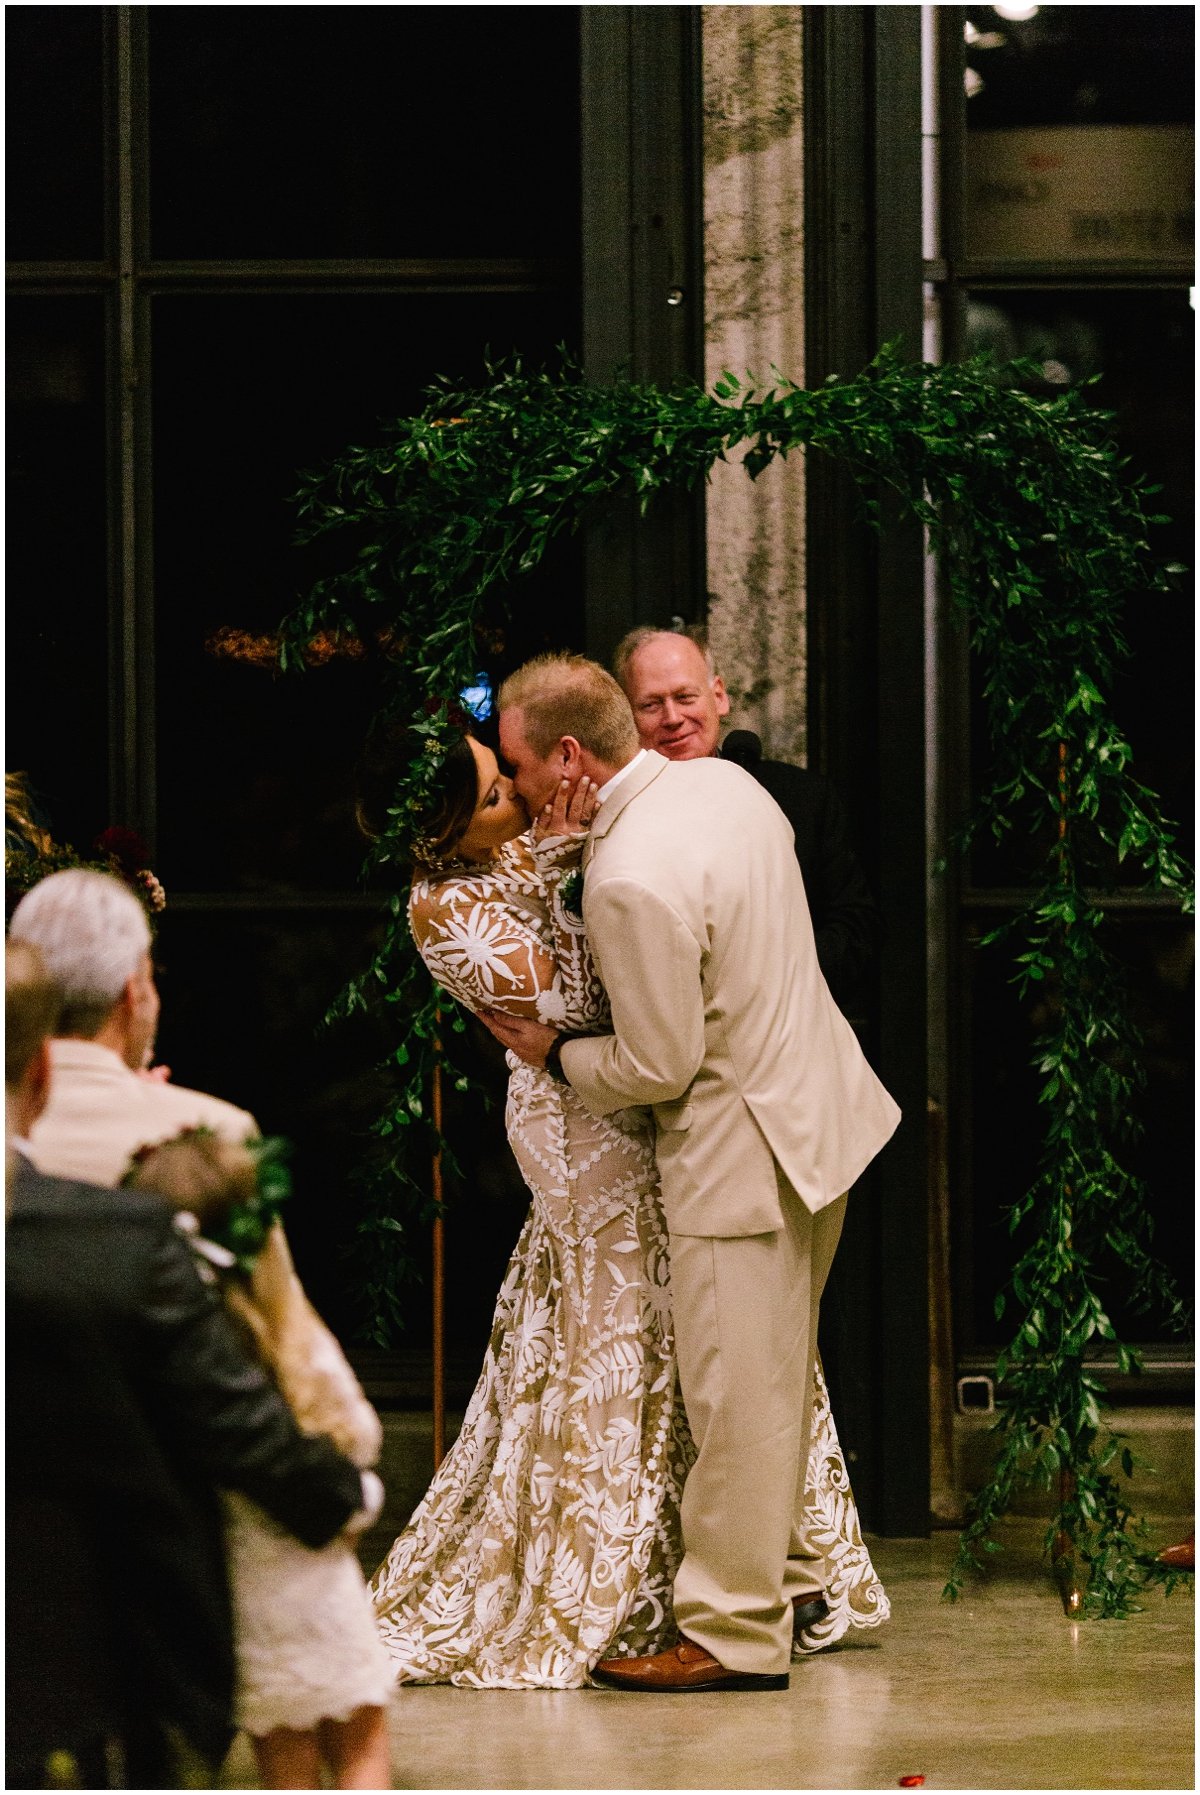 Bride and groom kiss at their ceremony